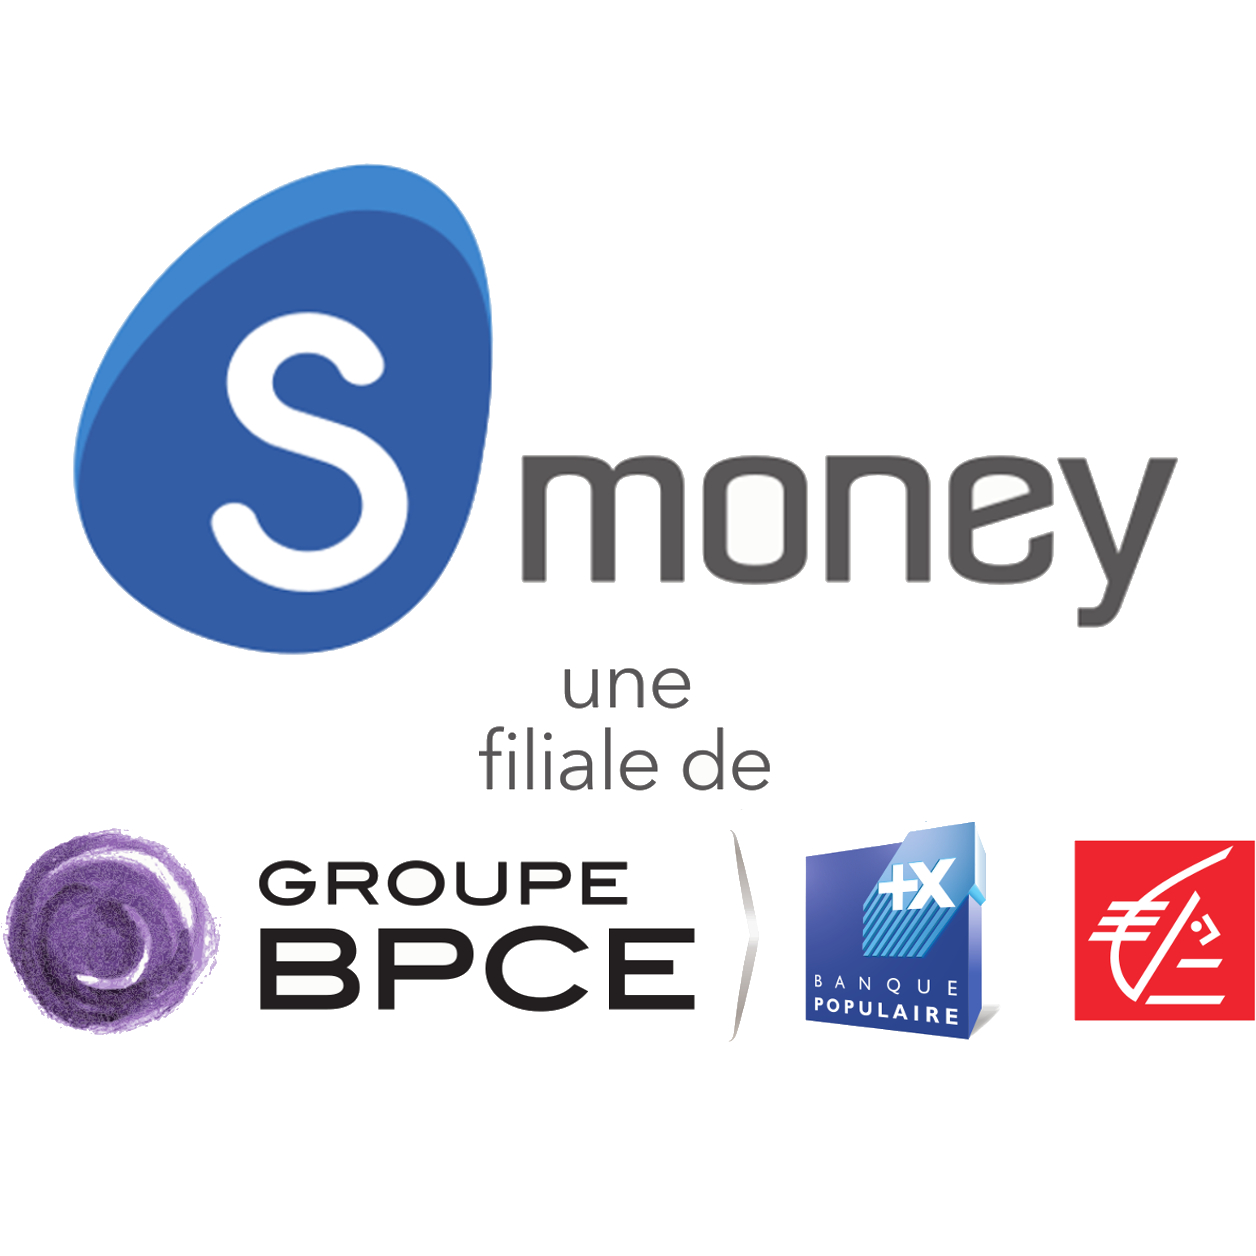 Bandeau s money versionfinale 9a49d10c